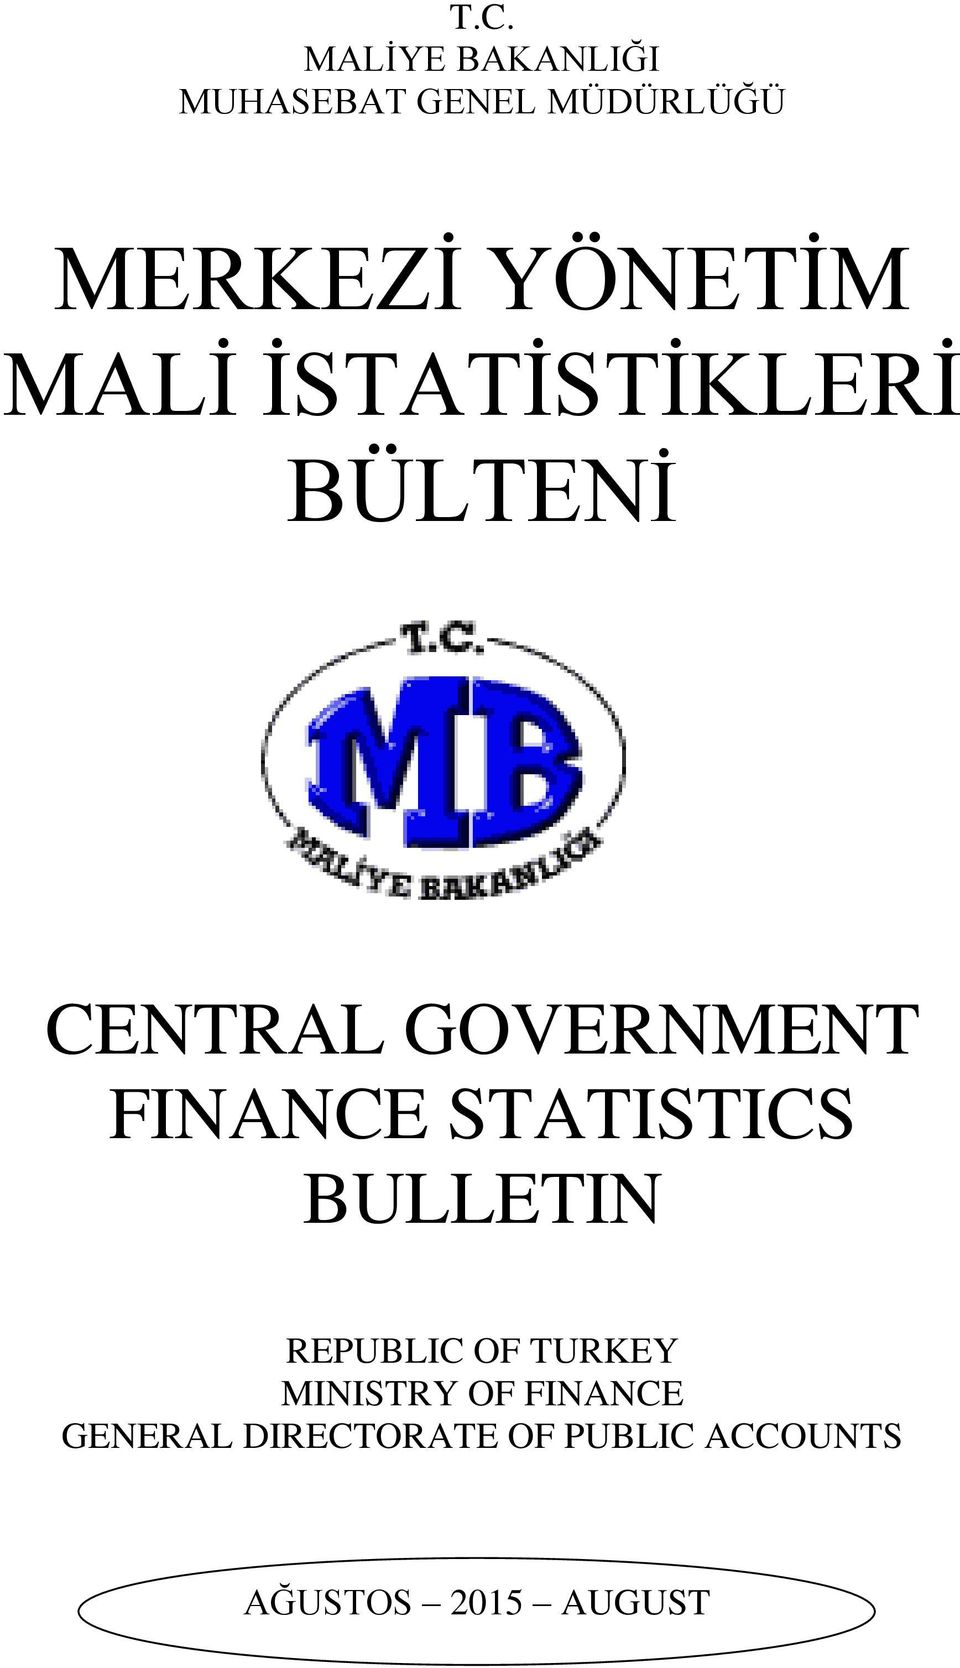 FINANCE STATISTICS BULLETIN REPUBLIC OF TURKEY MINISTRY OF